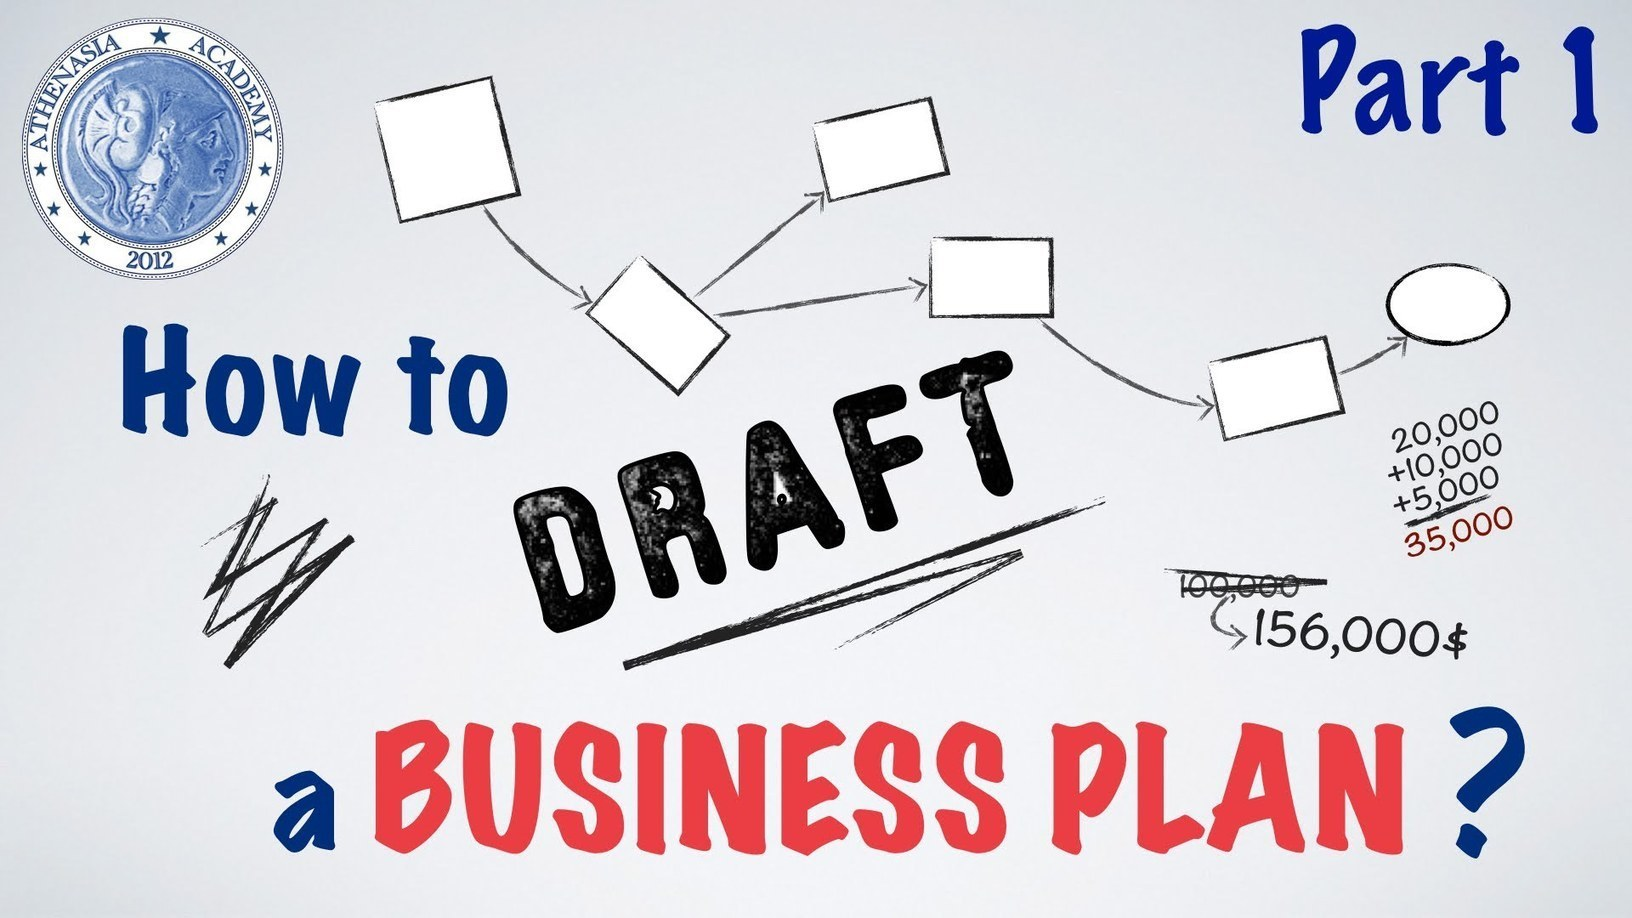 coursework business plan Business model, to mitigate each of these financial strains it is the goal of the school to grow both academic credit and non-credit (ie, professional development and training) programs.